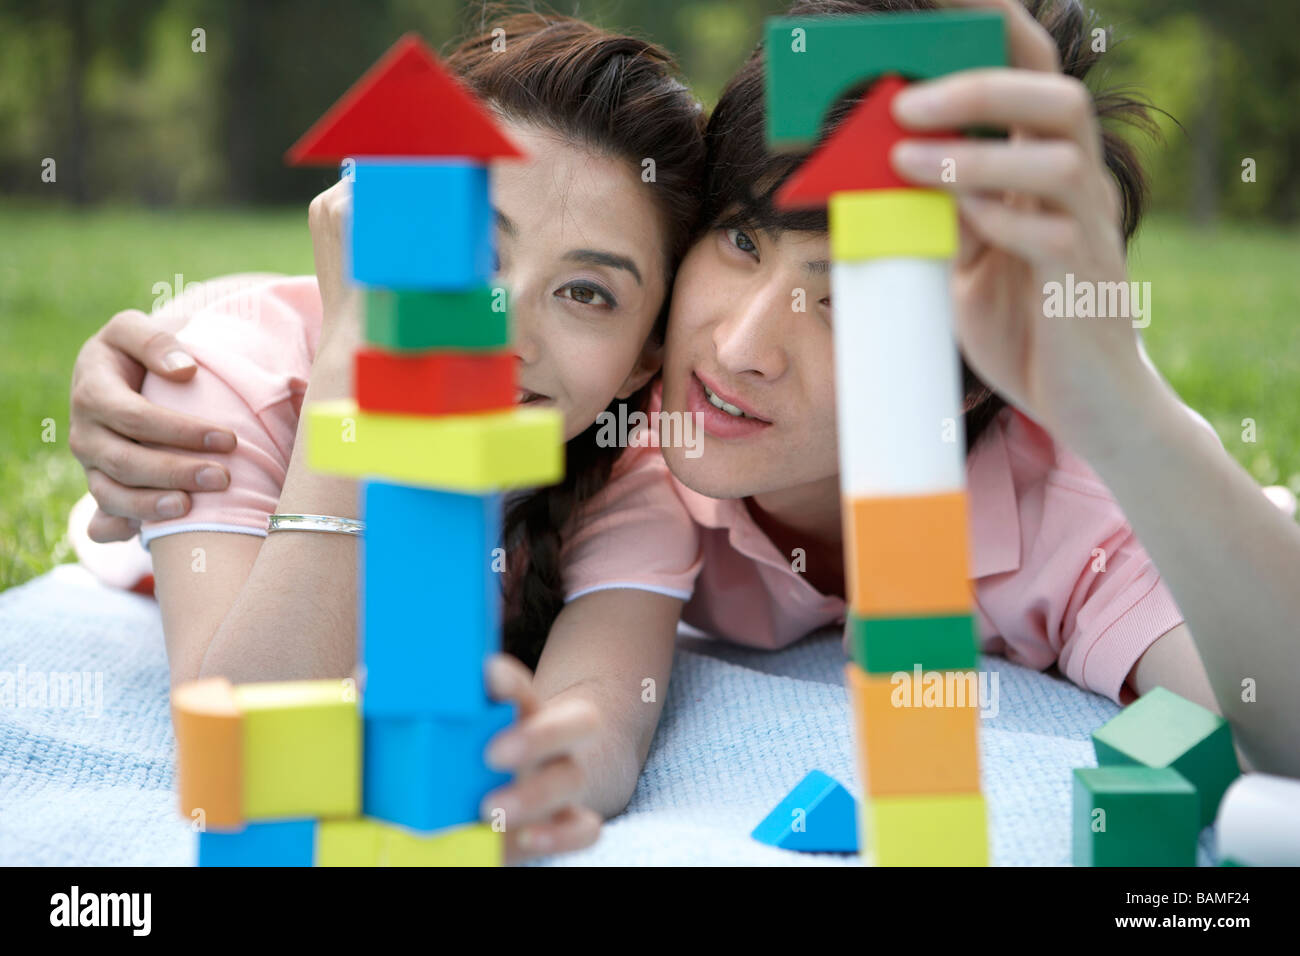 Young Couple Laying In The Park On A Blanket With Building Blocks Stock Photo